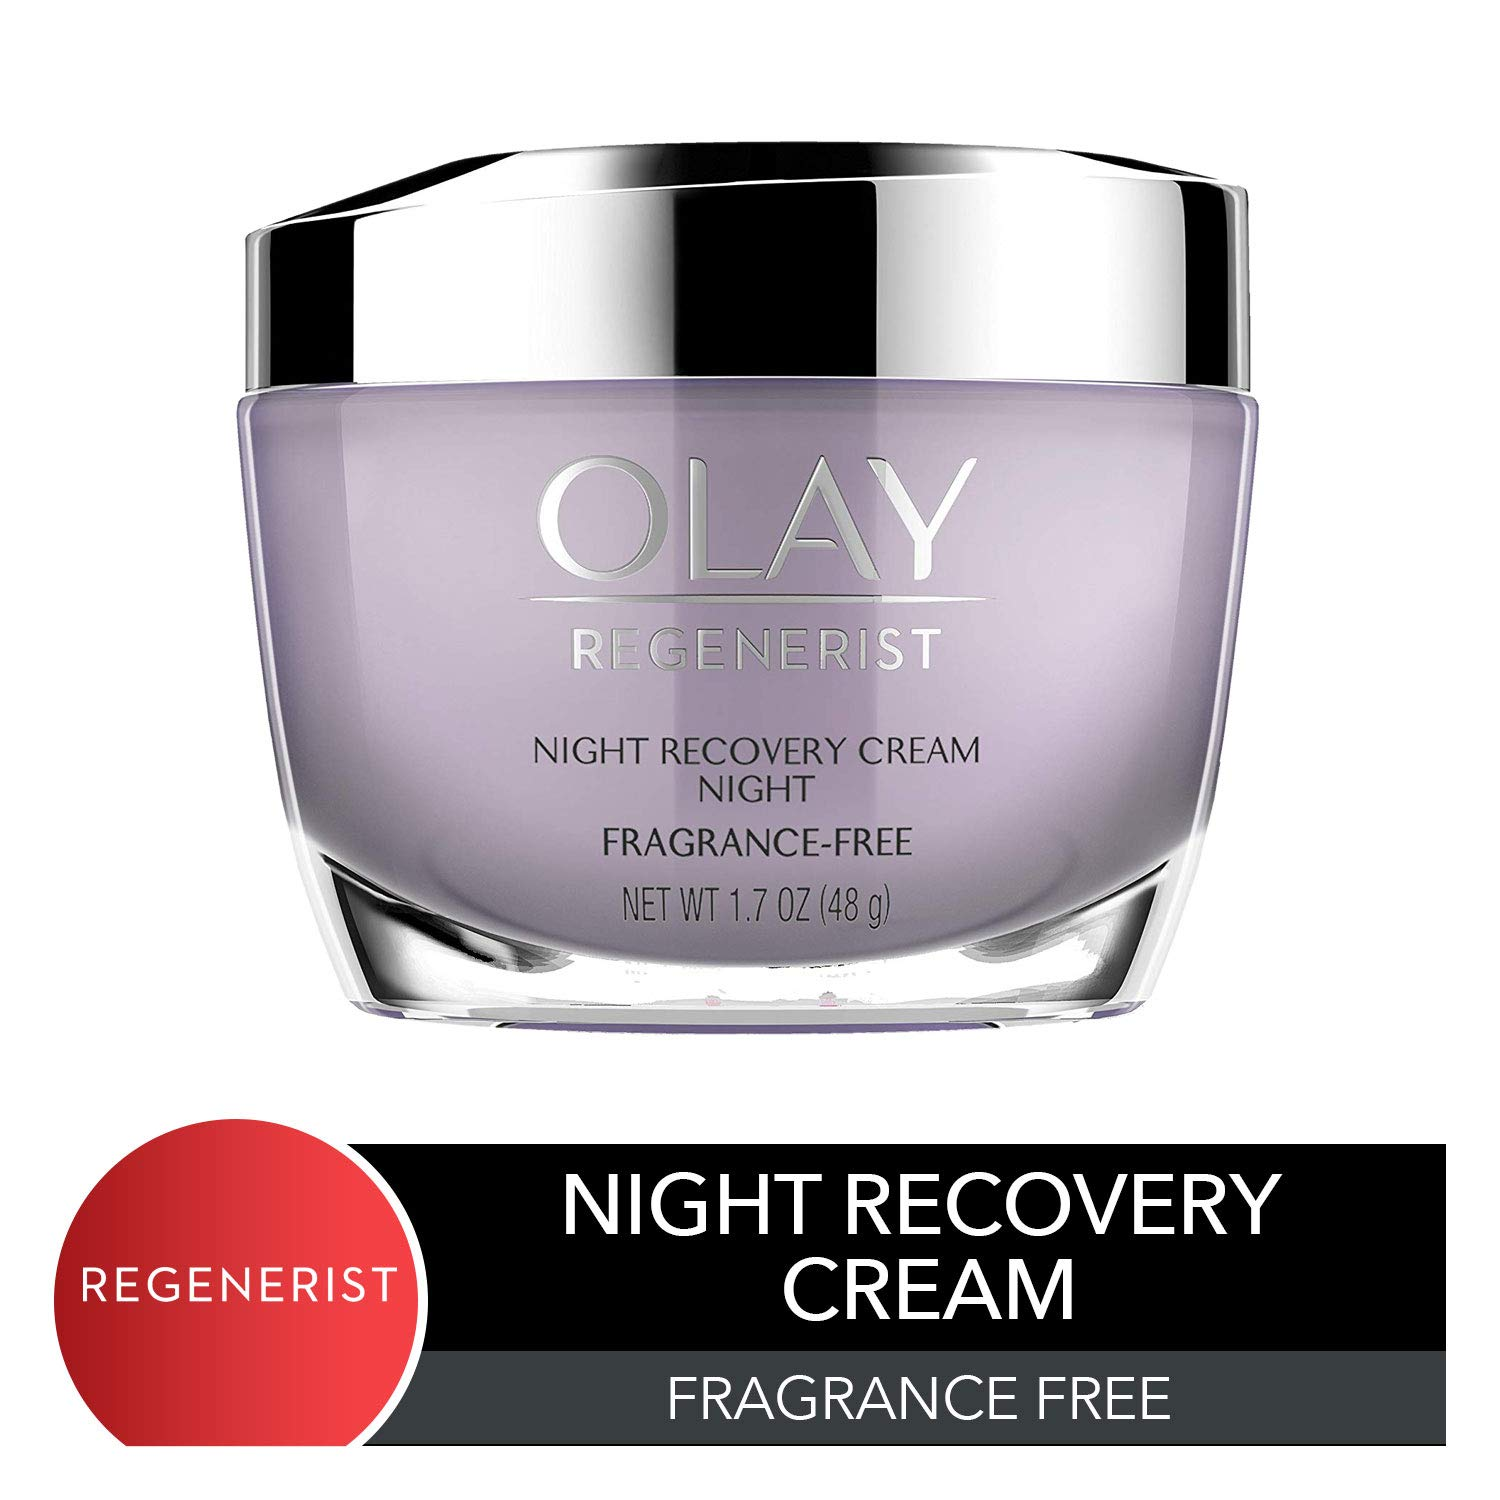 Night Cream by Olay, Regenerist Night Recovery Anti-Aging Face Moisturizer with Vitamin E, 1.7 oz by Olay